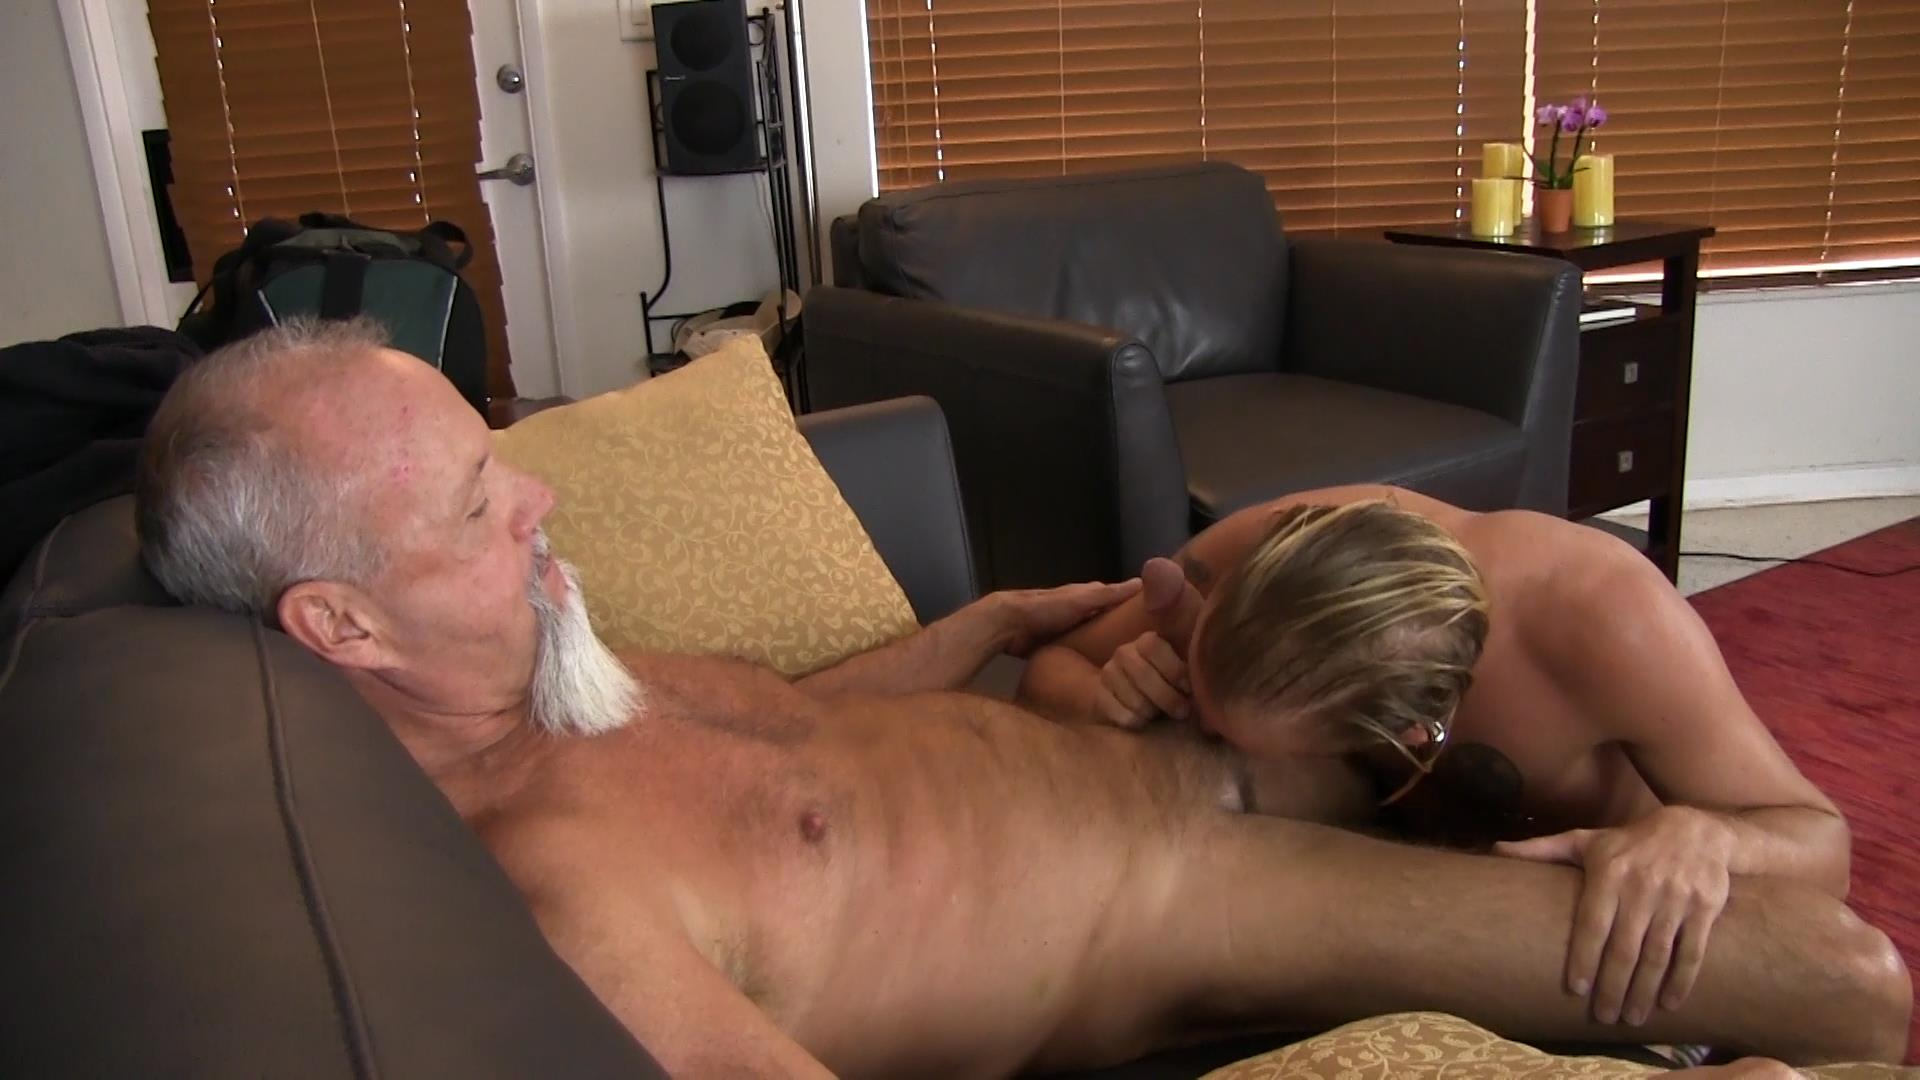 Bareback-Me-Daddy-Silver-Daddy-Barebacks-Younger-Guy-Amateur-Gay-Porn-04 Getting Barebacked By A Thick Daddy Dick